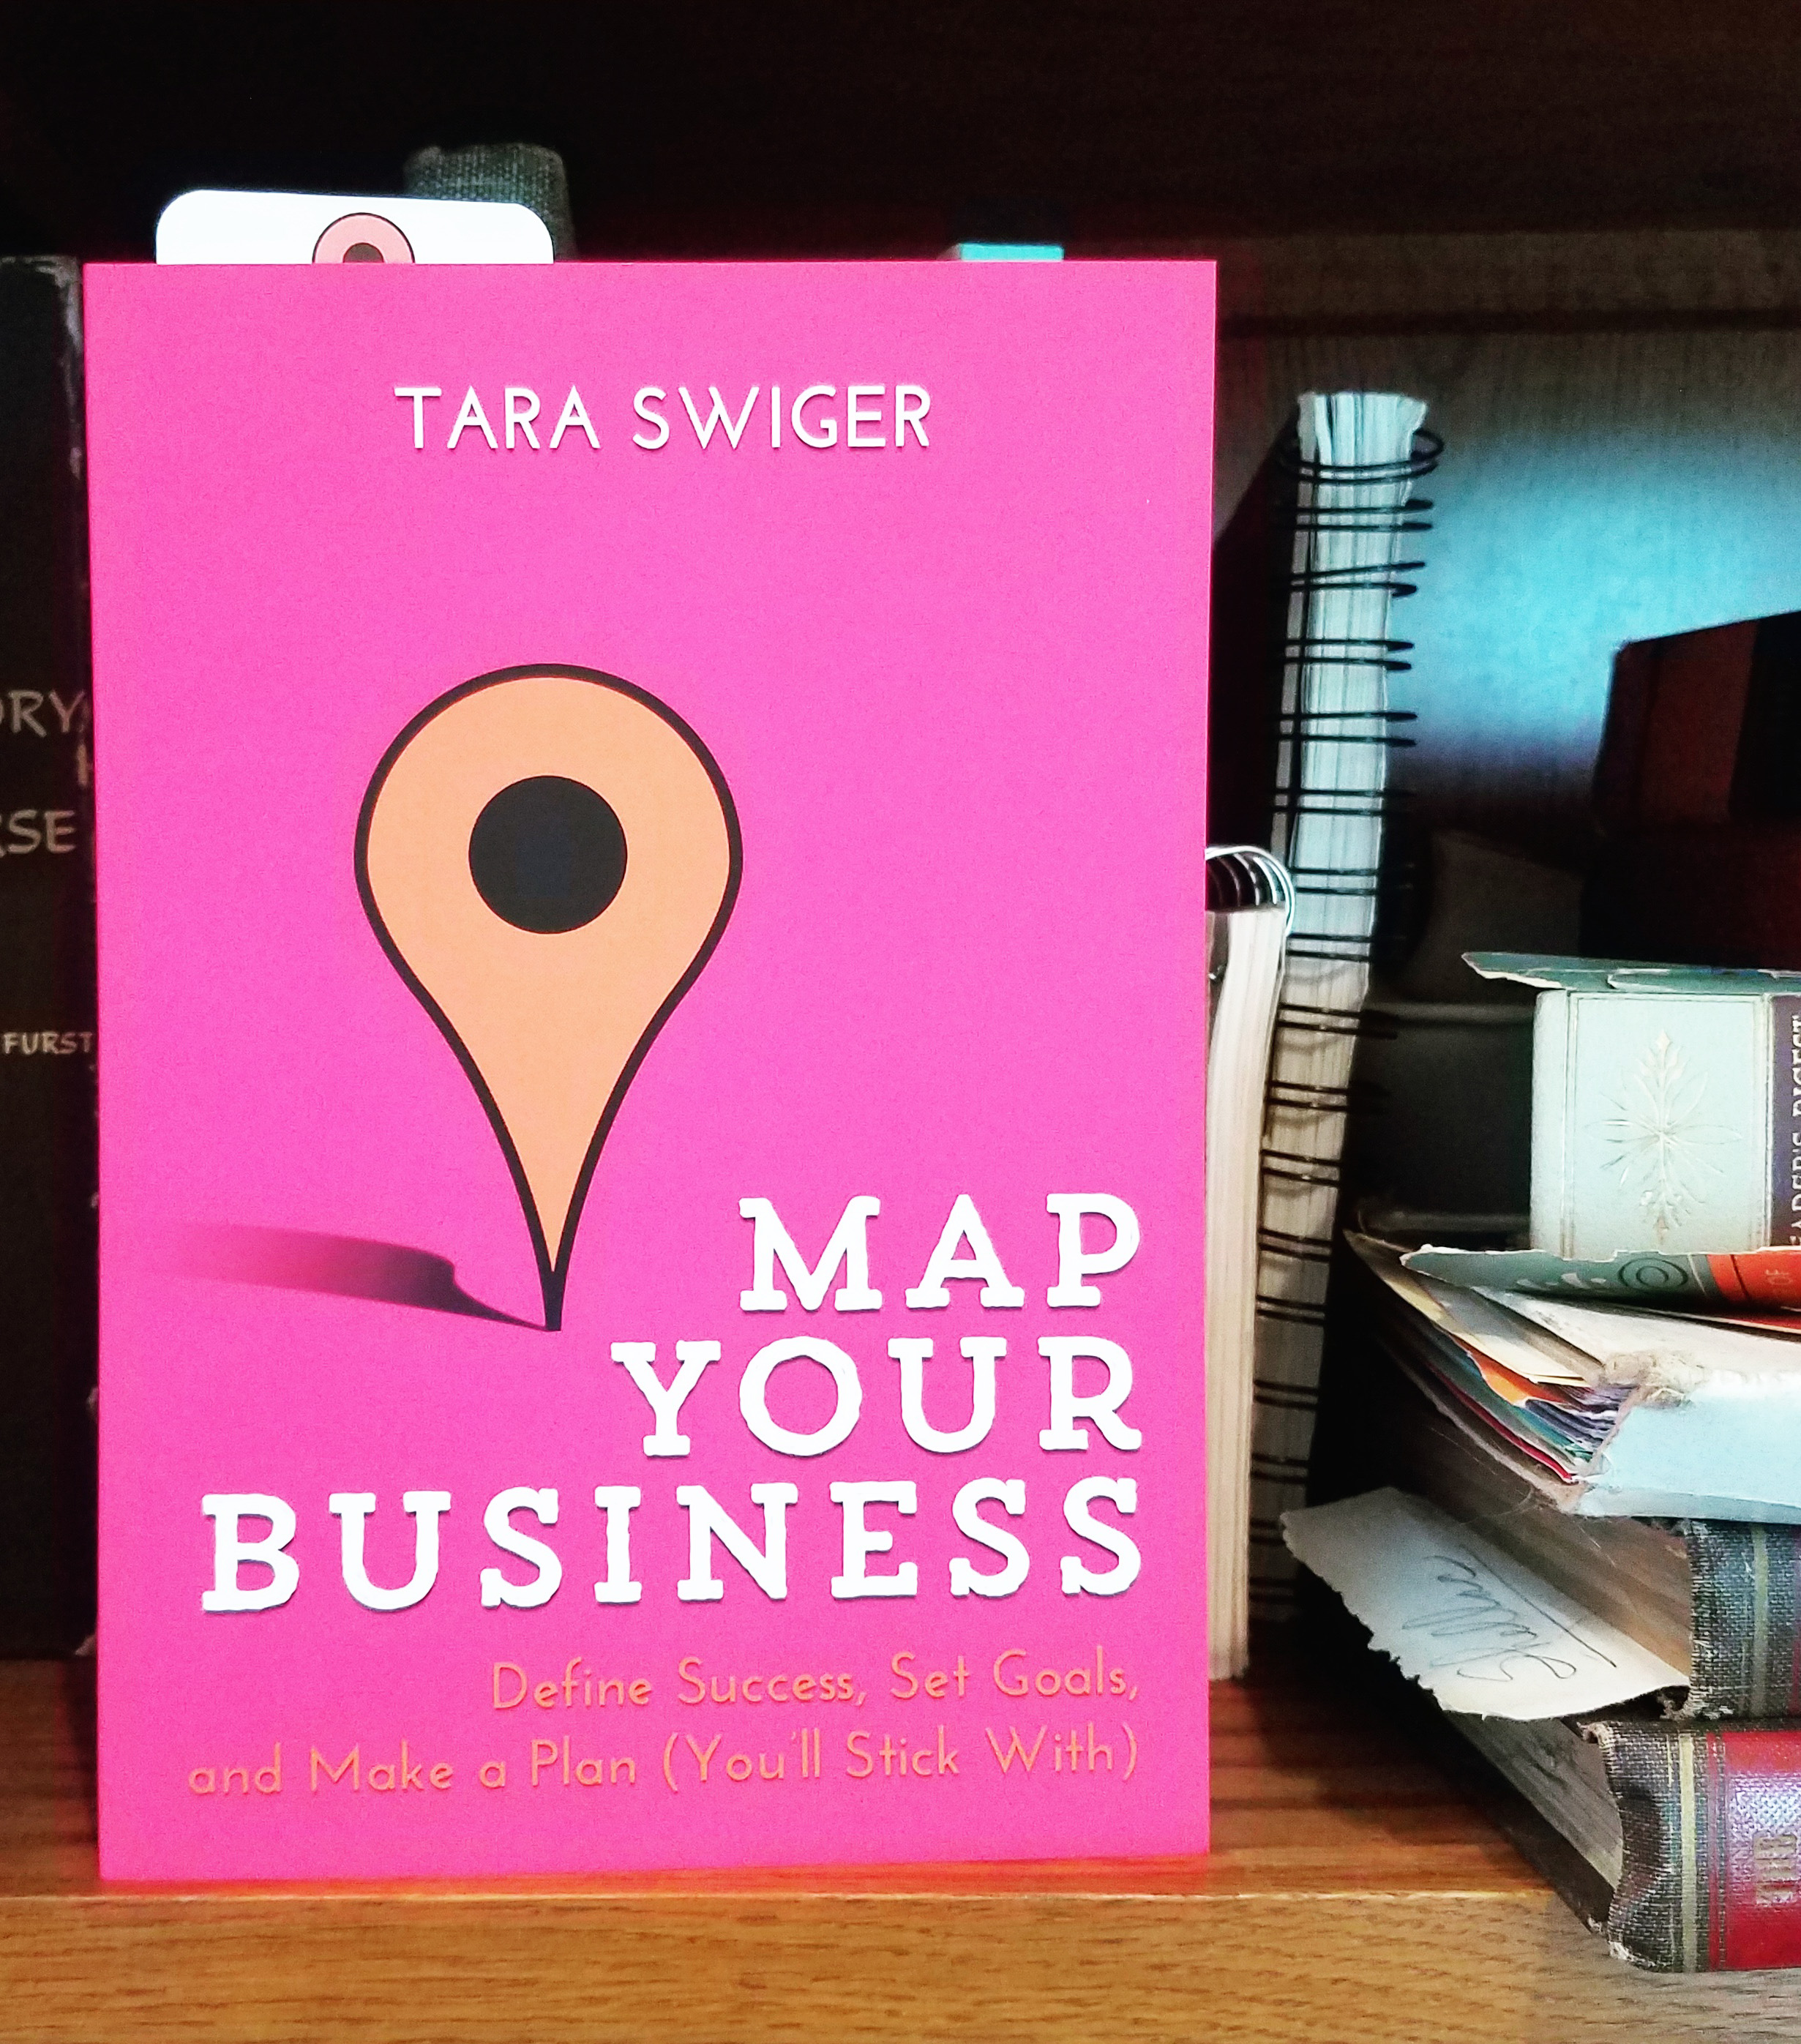 Map Your Business by Tara Swiger